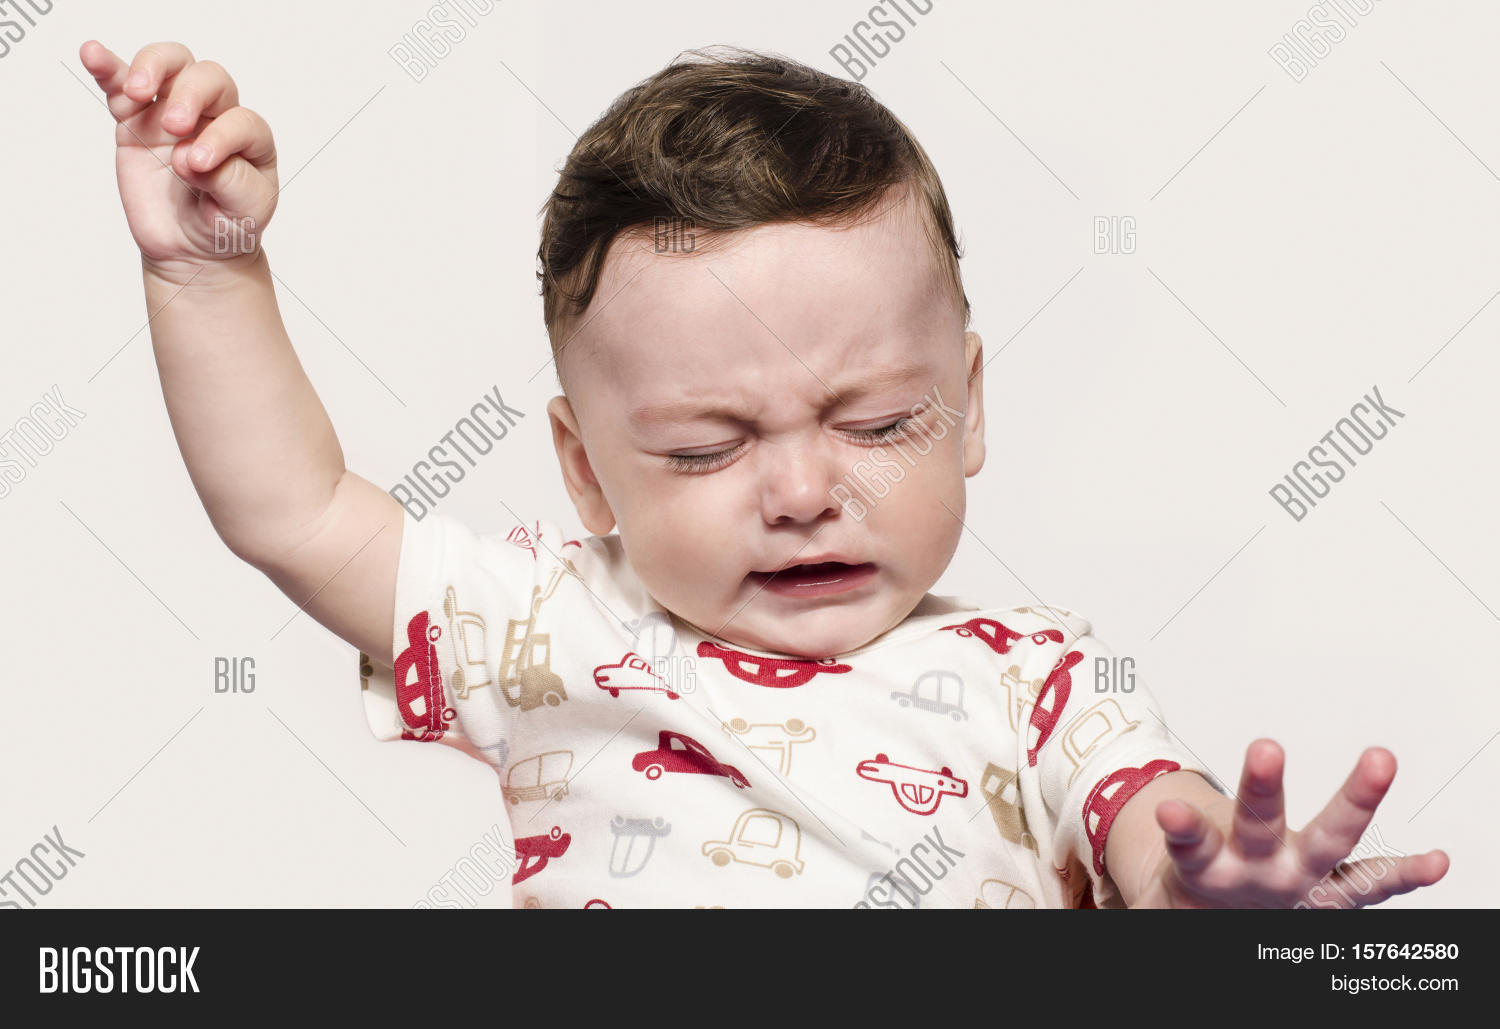 cute baby boy crying image & photo (free trial) | bigstock